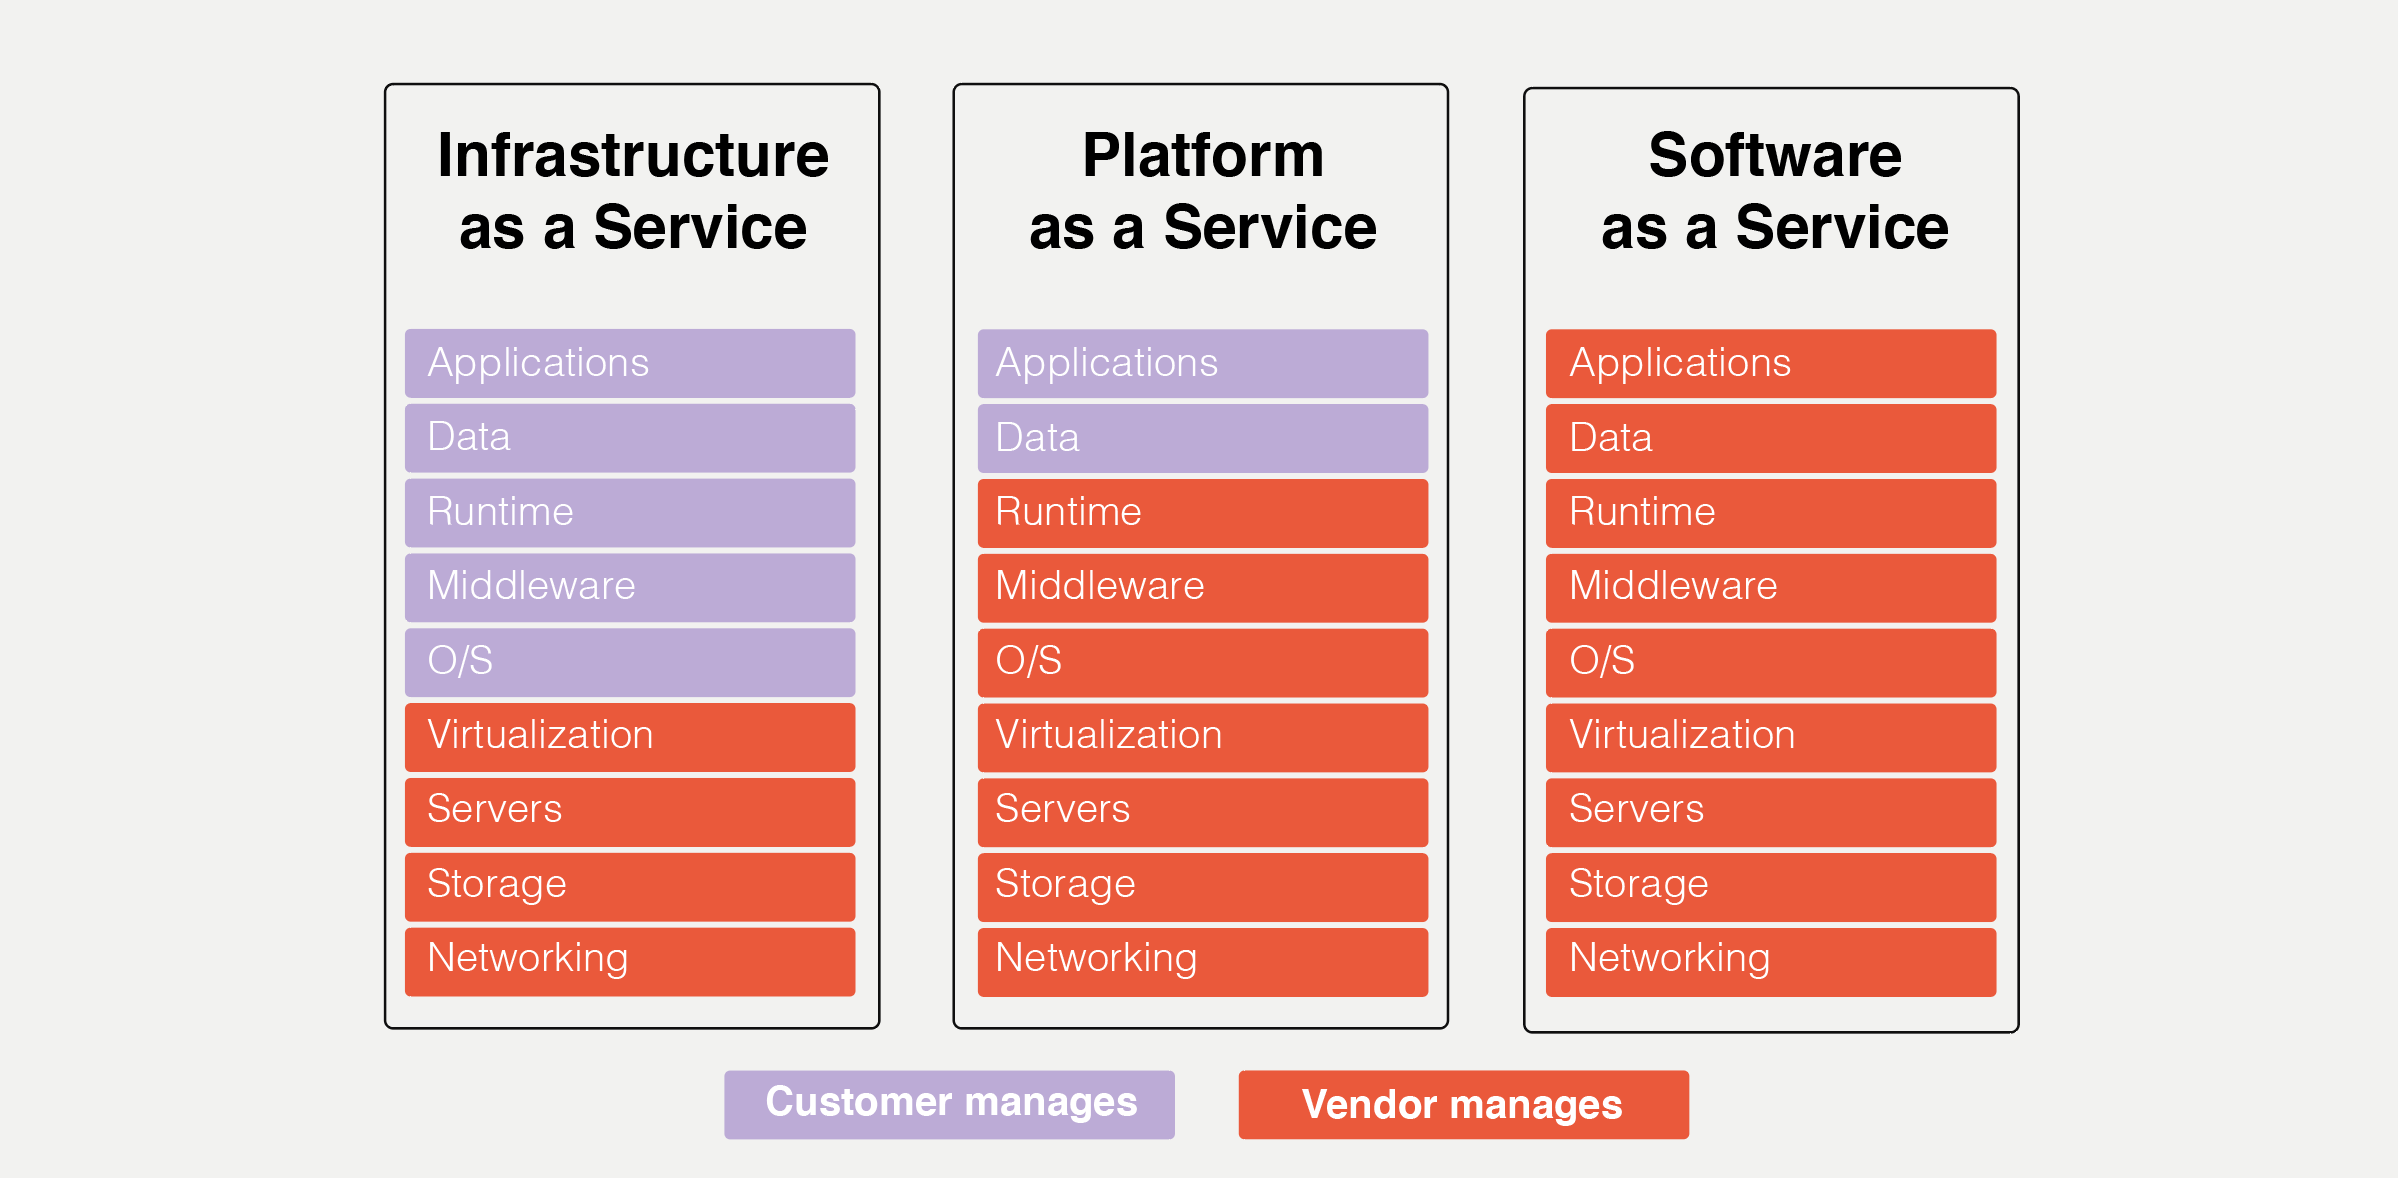 The major differences between IaaS, PaaS, and SaaS models